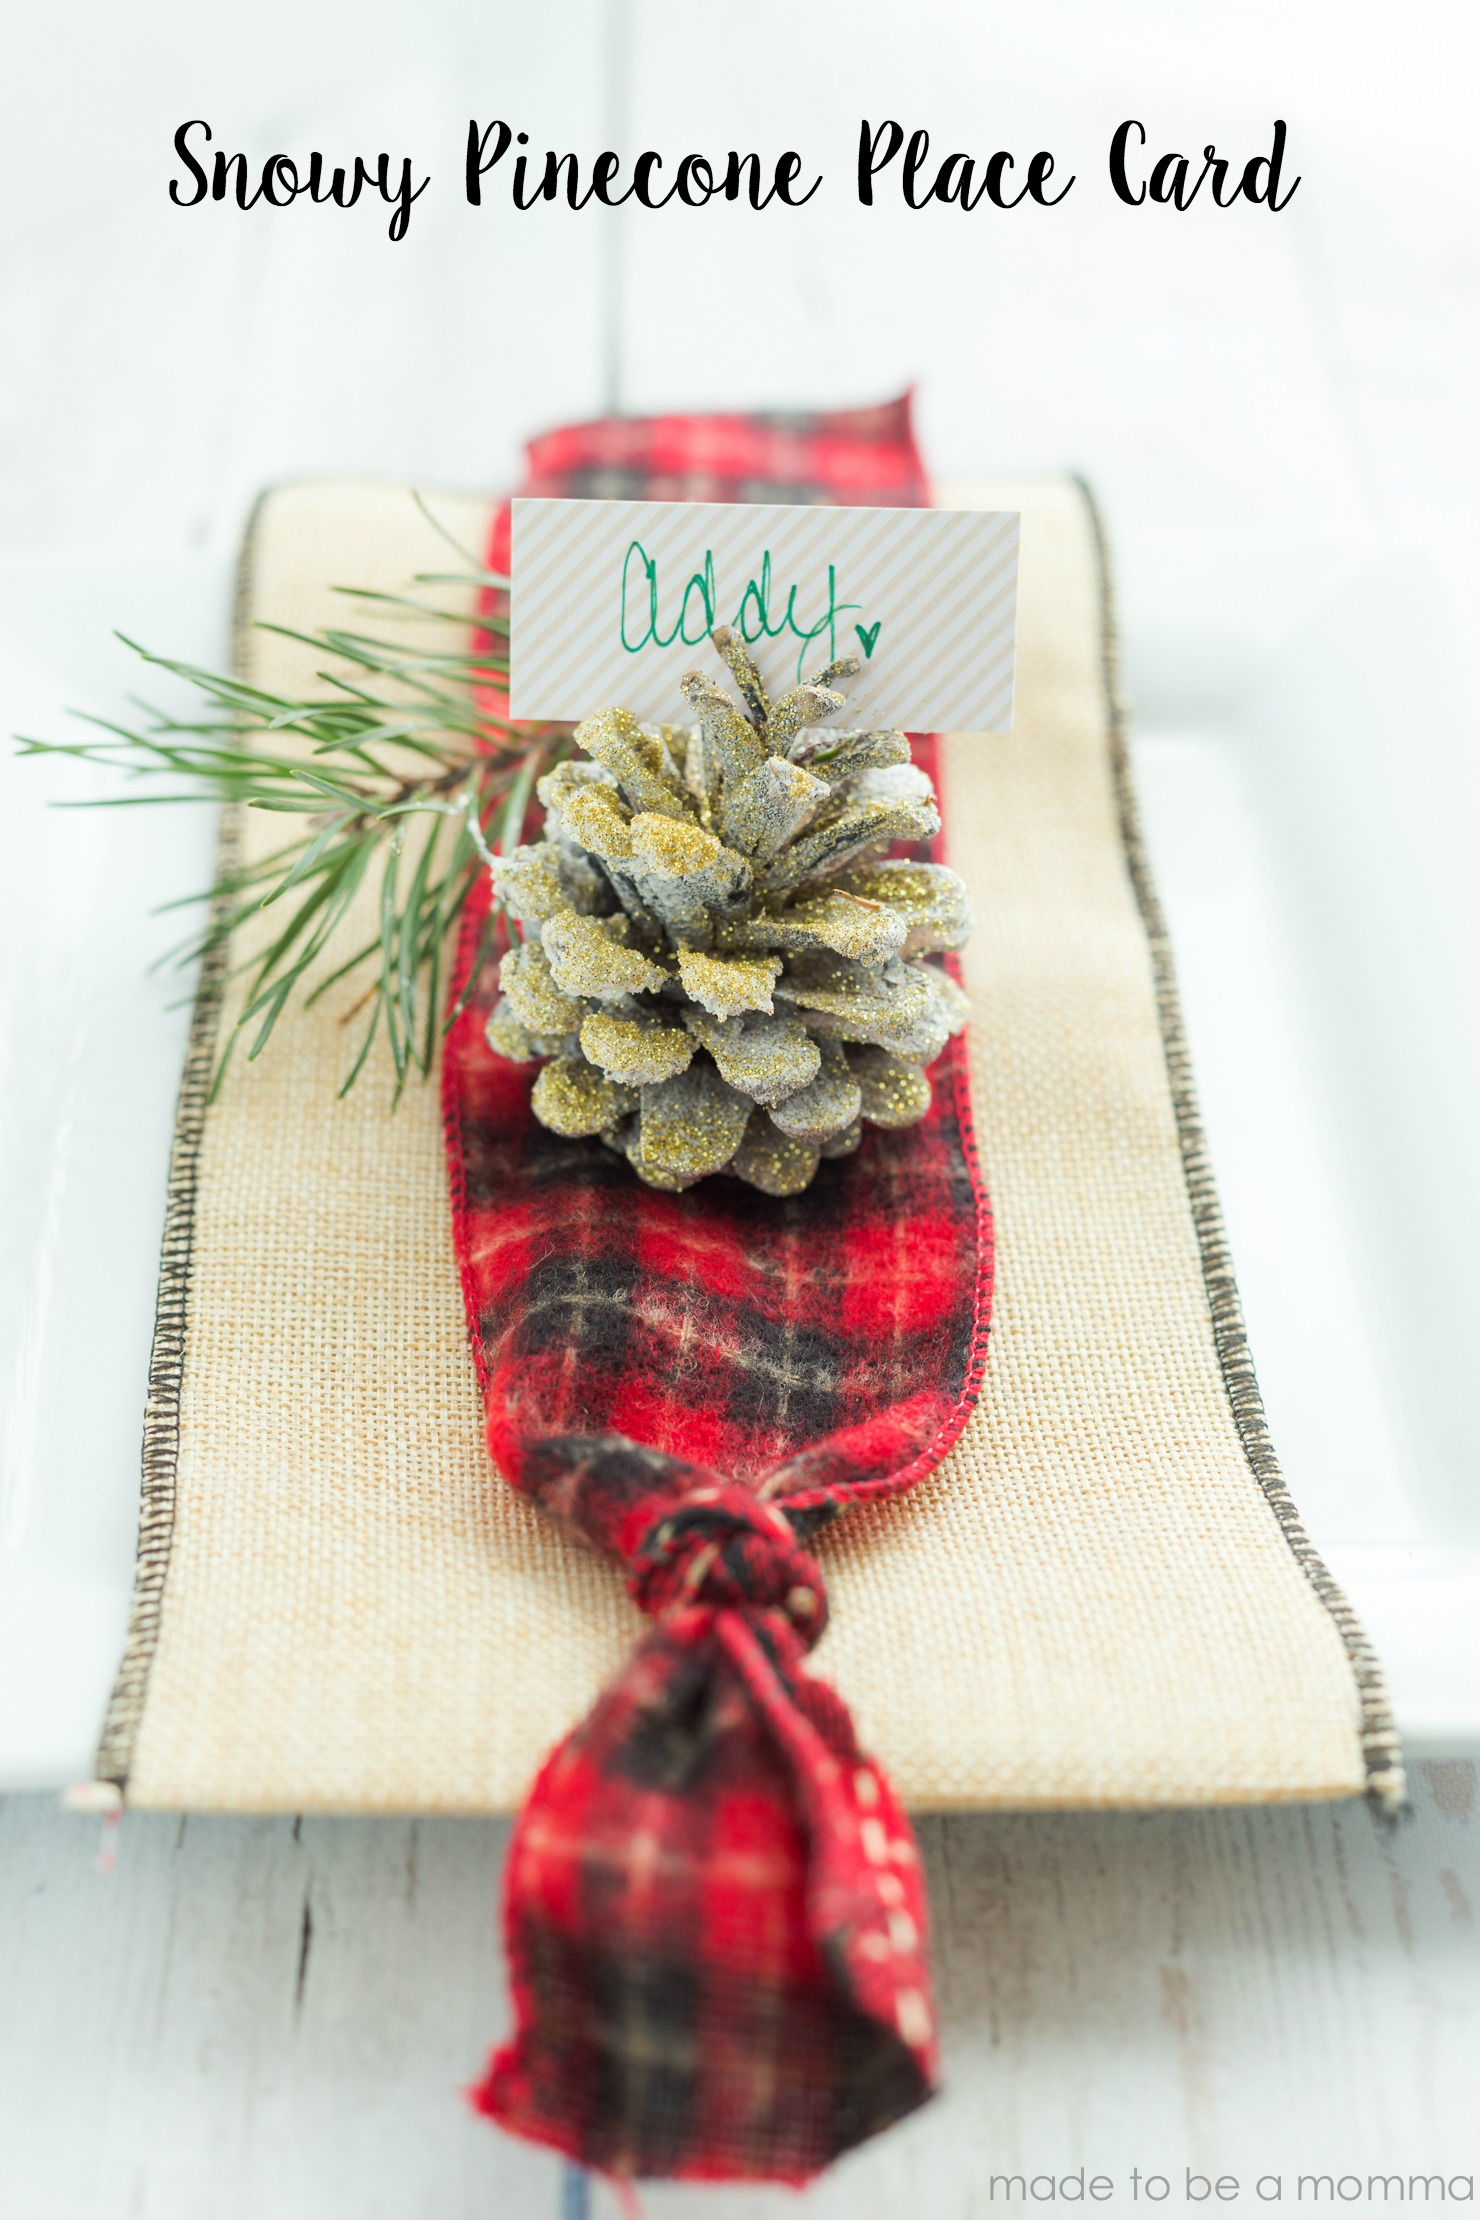 Snowy Pinecone Place Card